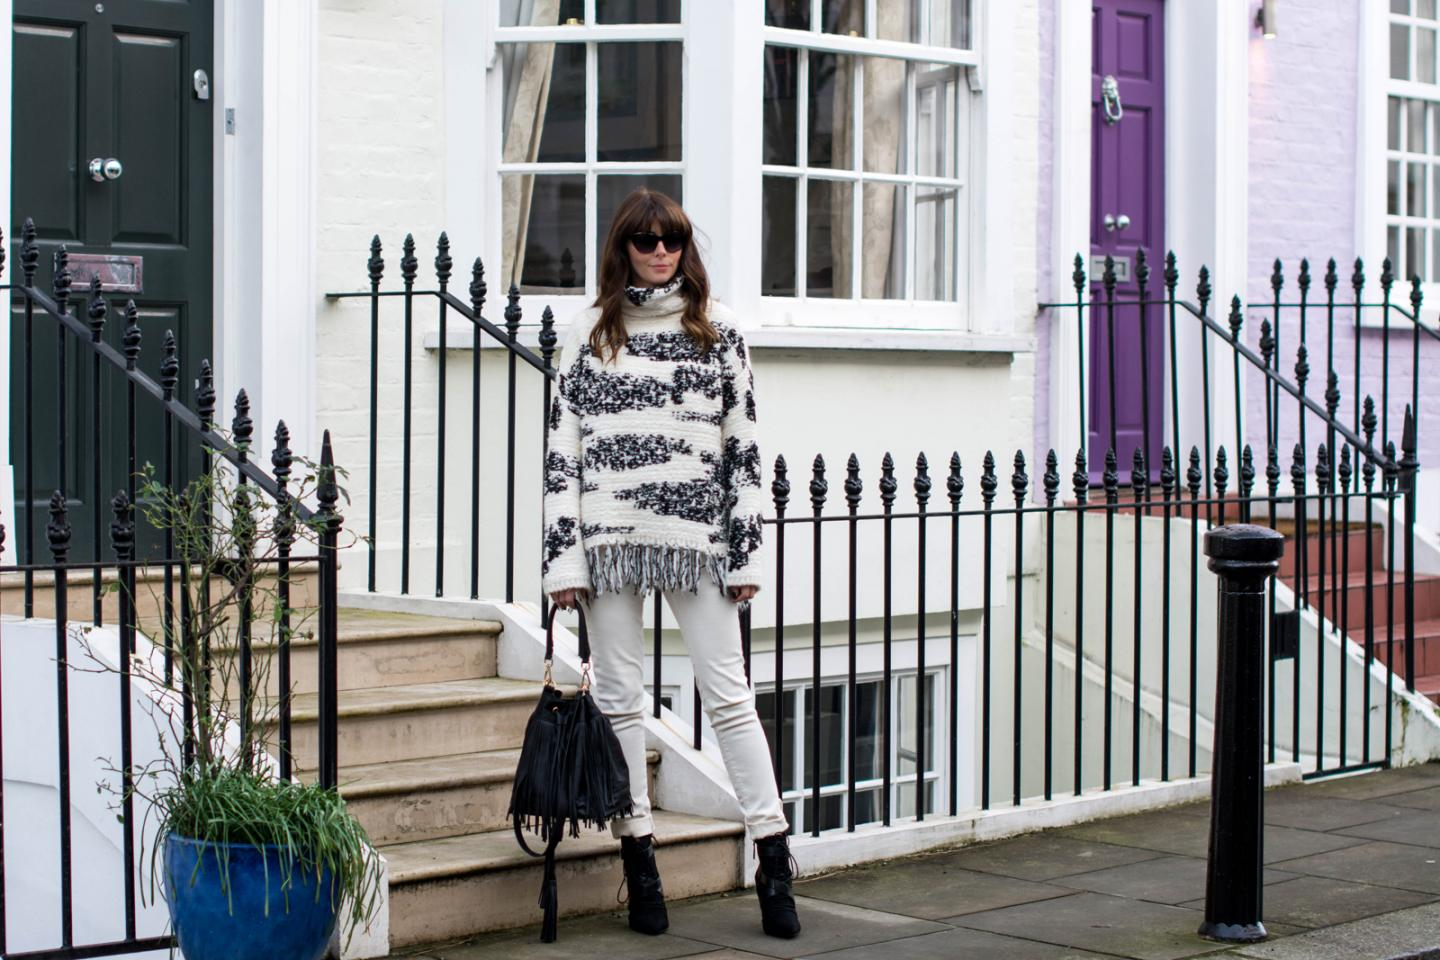 EJSTYLE - Zara fringe black white jumper, Zara TRF white jeans, Zara lace up ankle boots, Isabel Marant Inspired look, H&M fringed bucket bag, OOTD, fashion blogger